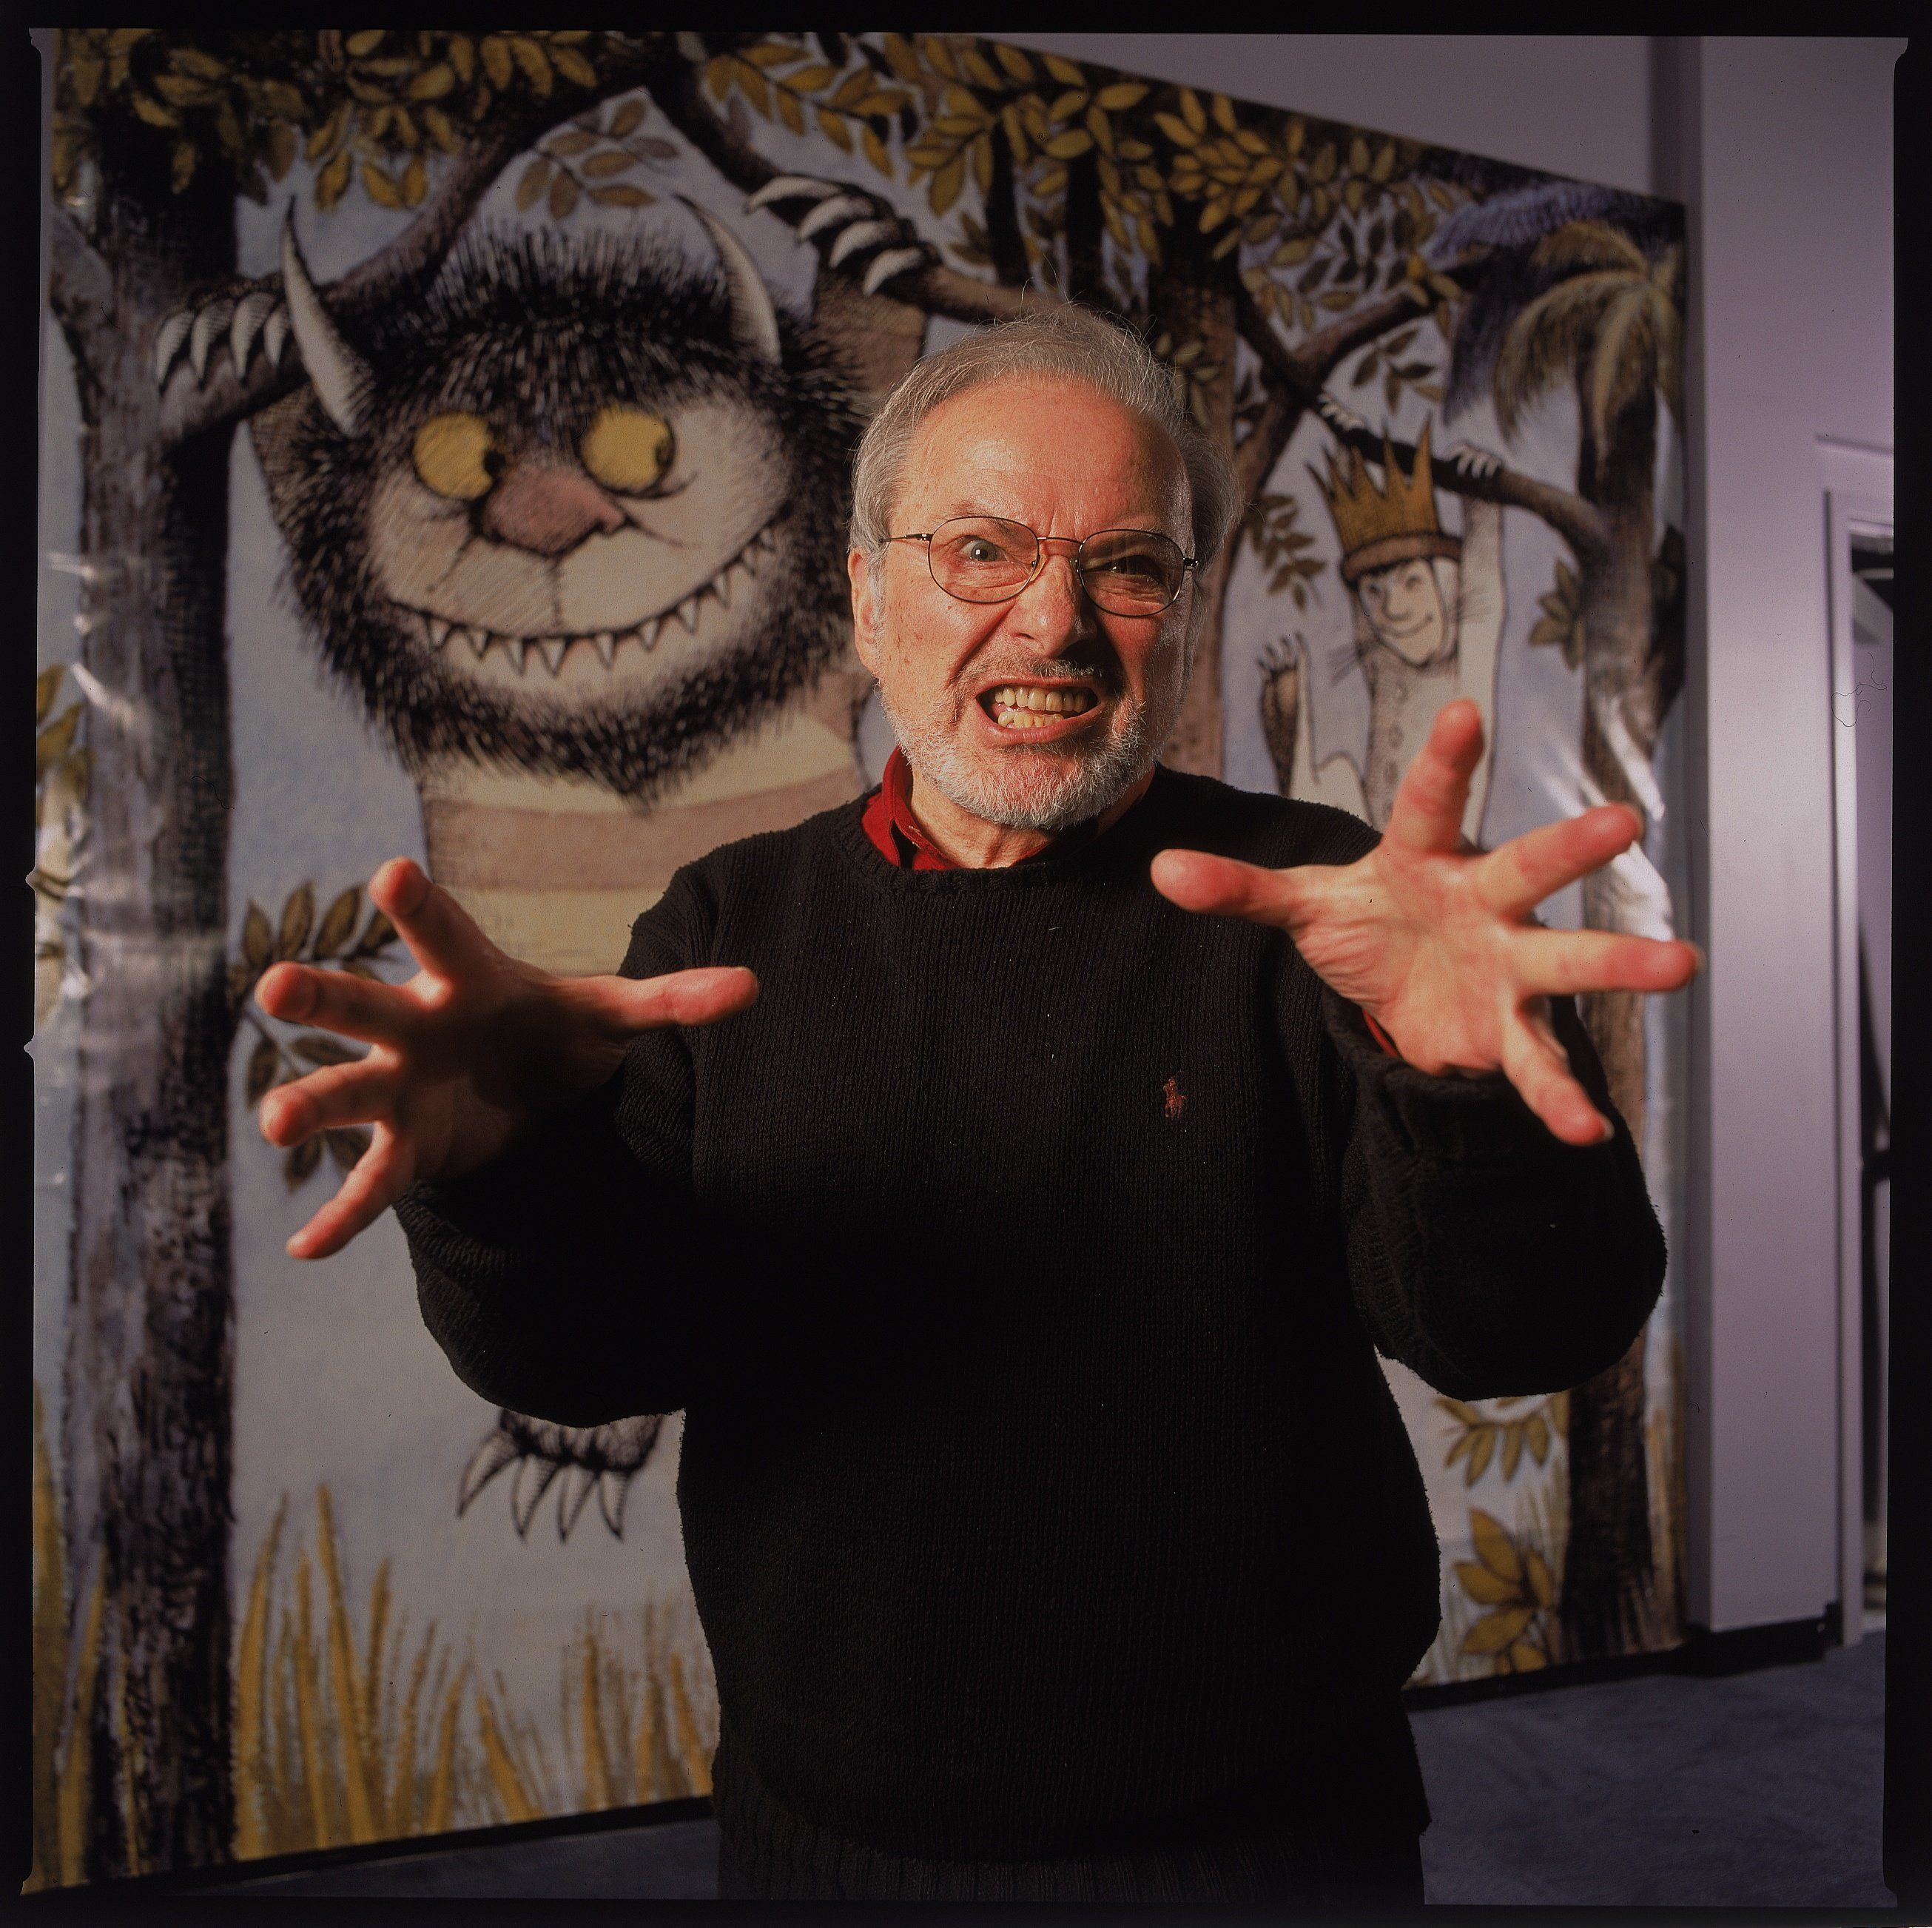 NEW YORK, UNITED STATES - JANUARY 11:  Author/illustrator Maurice Sendak standing by an life-size scene from his book WHERE THE WILD THINGS ARE at the Children's Museum of Manhattan which is honoring his 50 years of work with an exhibit.  (Photo by James